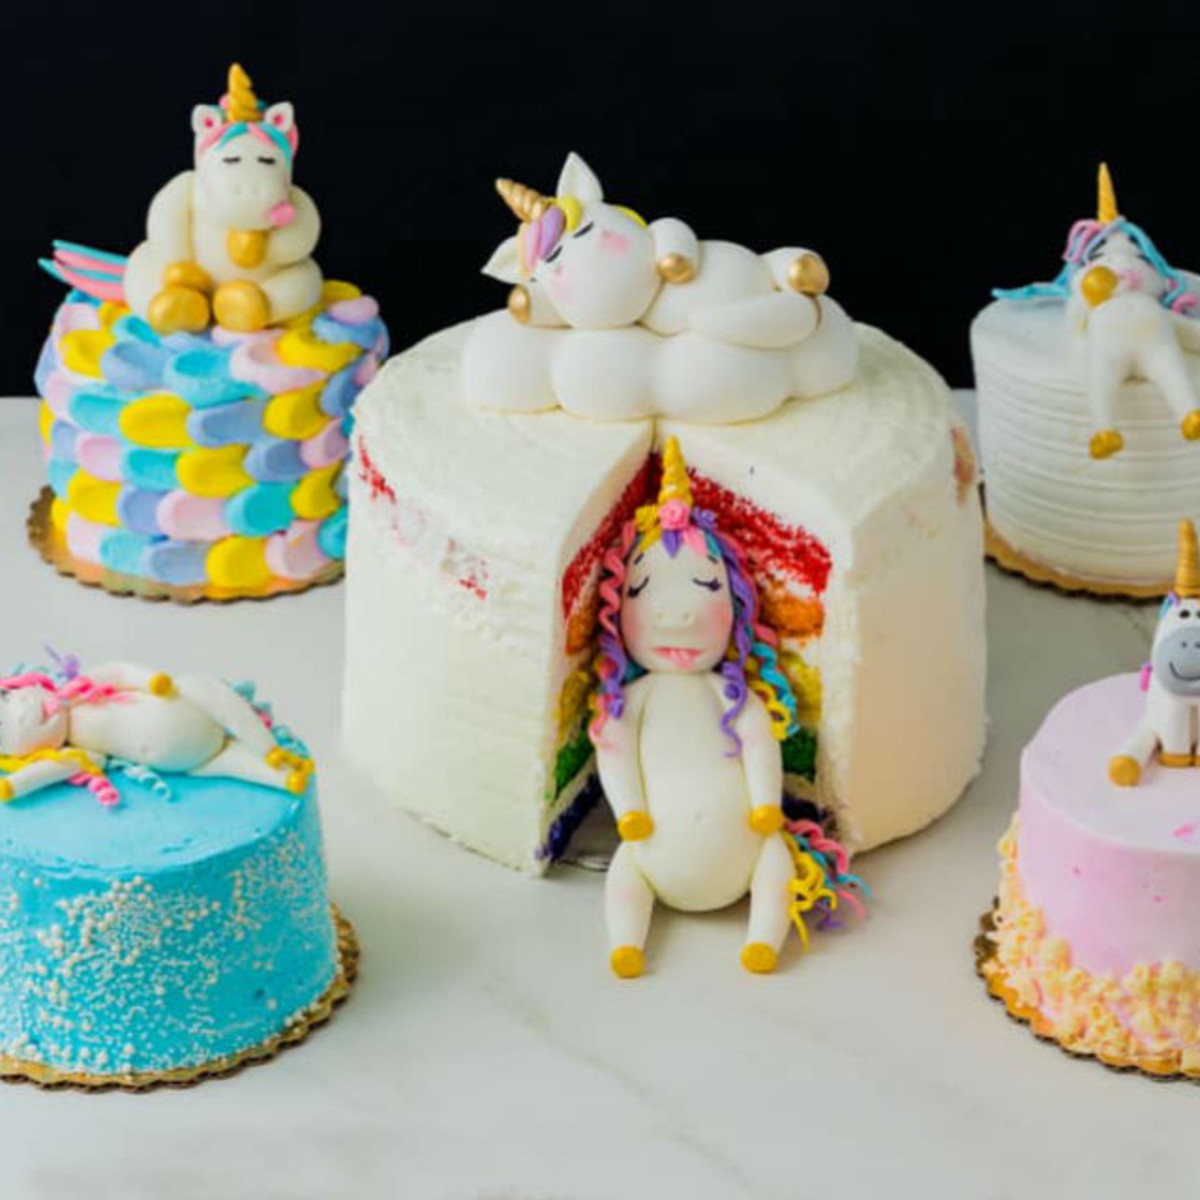 Magical Dessert bar unicorn cake